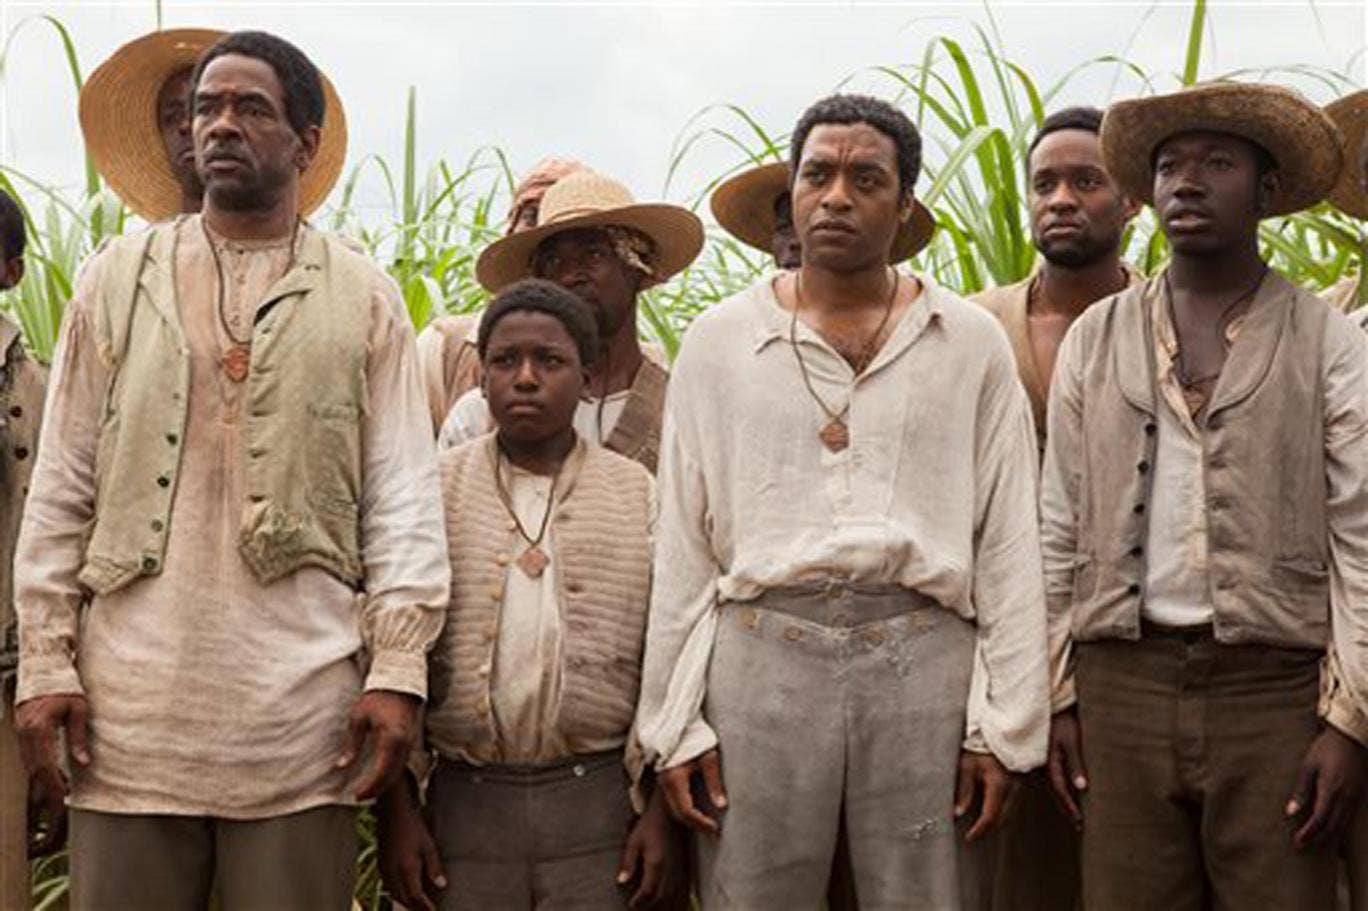 Chiwetel Ejiofor stars as kidnapped slave Solomon Northup in 12 Years A Slave, the bookmakers' favourite for Best Actor